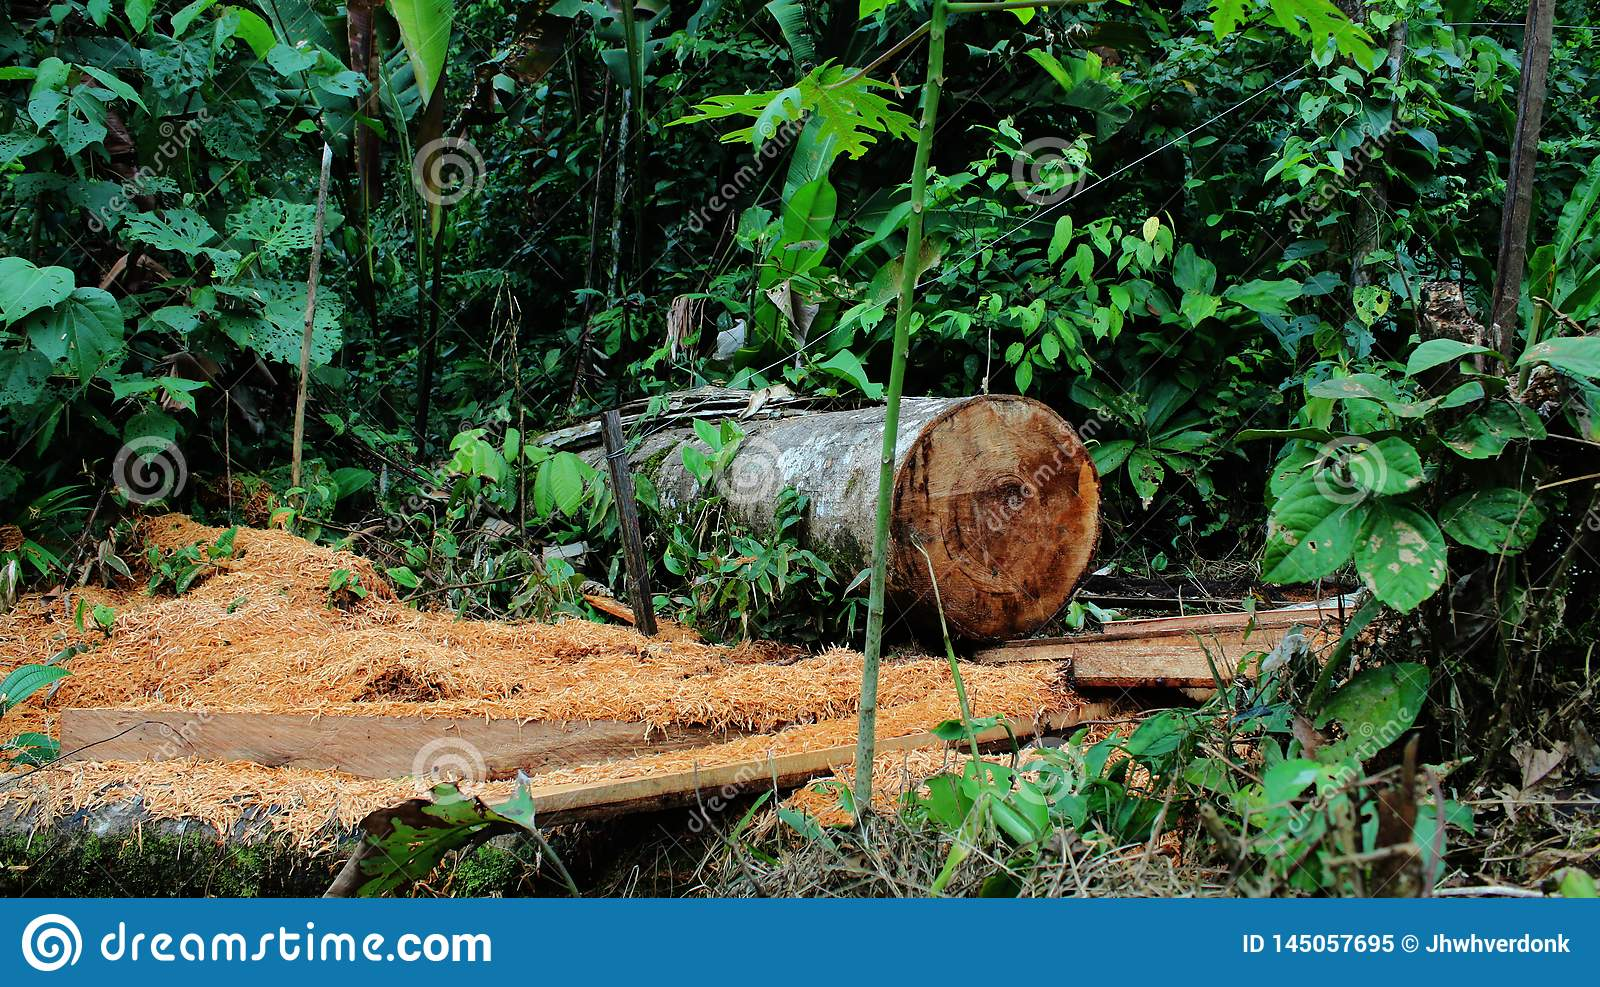 Deforestation: Lots Of Sawdust And A Large Tree Cut Down